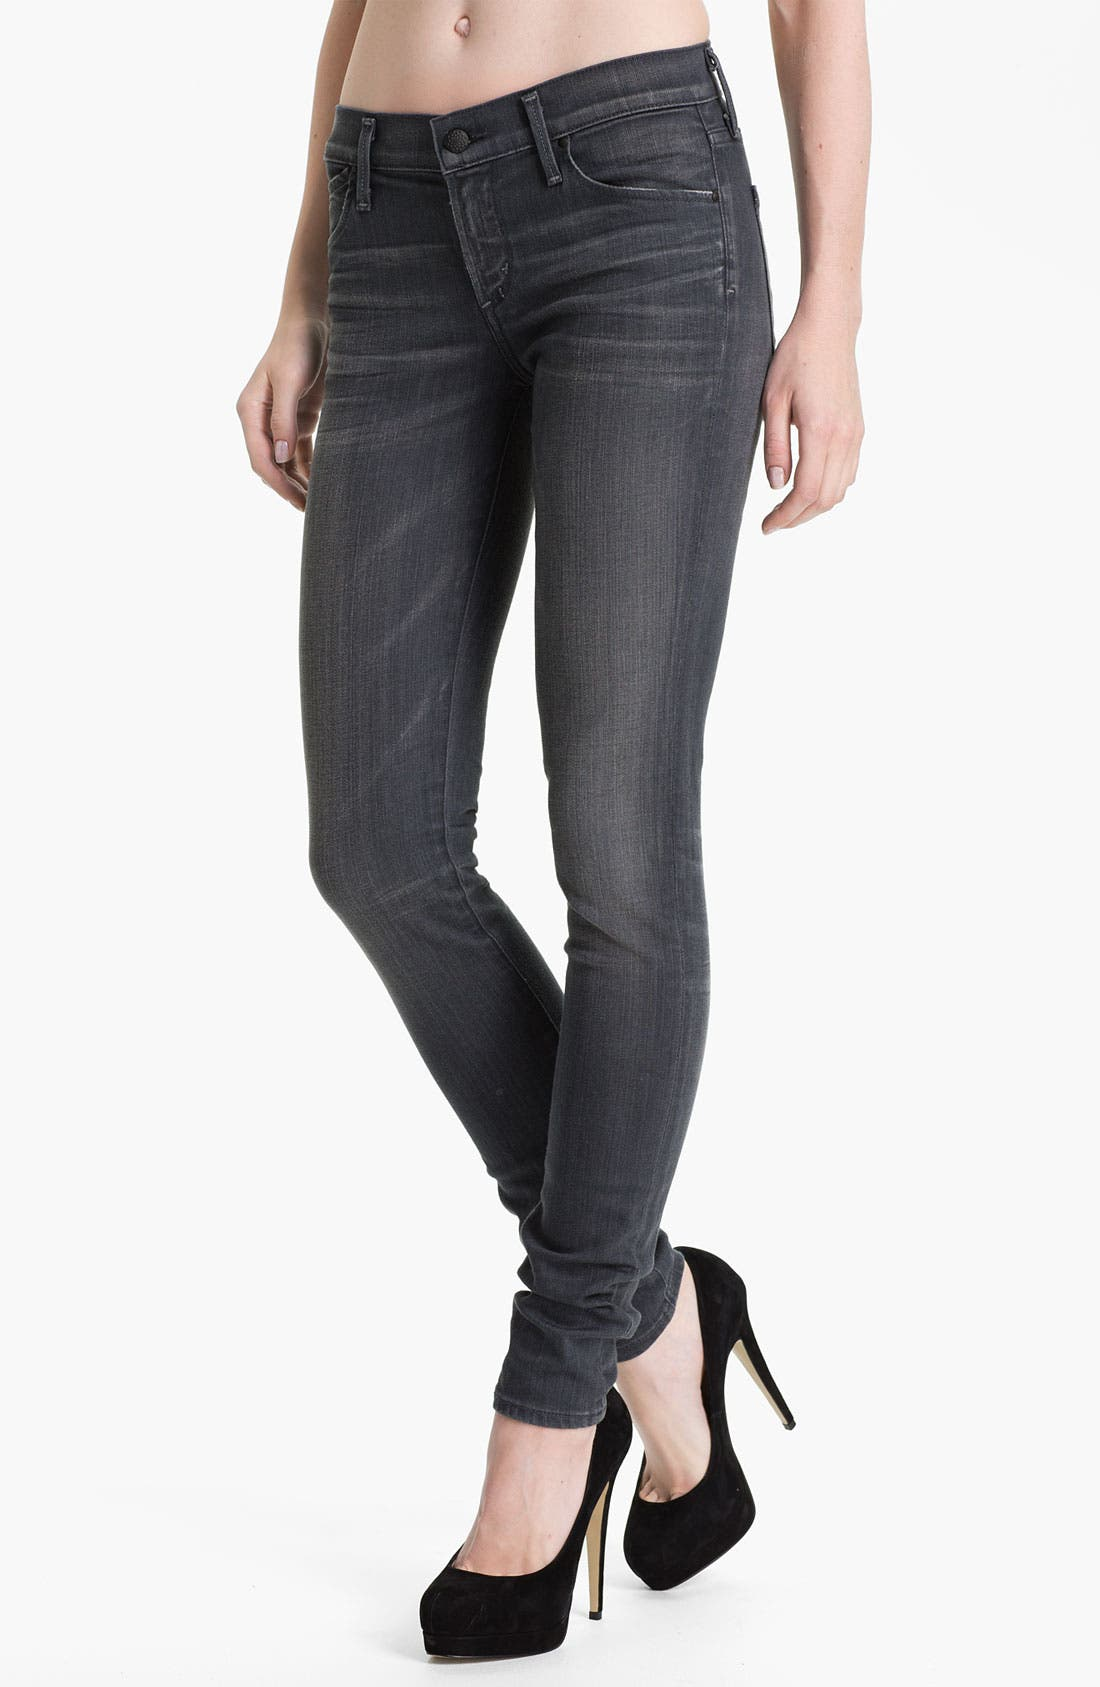 Alternate Image 1 Selected - Citizens of Humanity Skinny Stretch Denim Jeans (Flint)